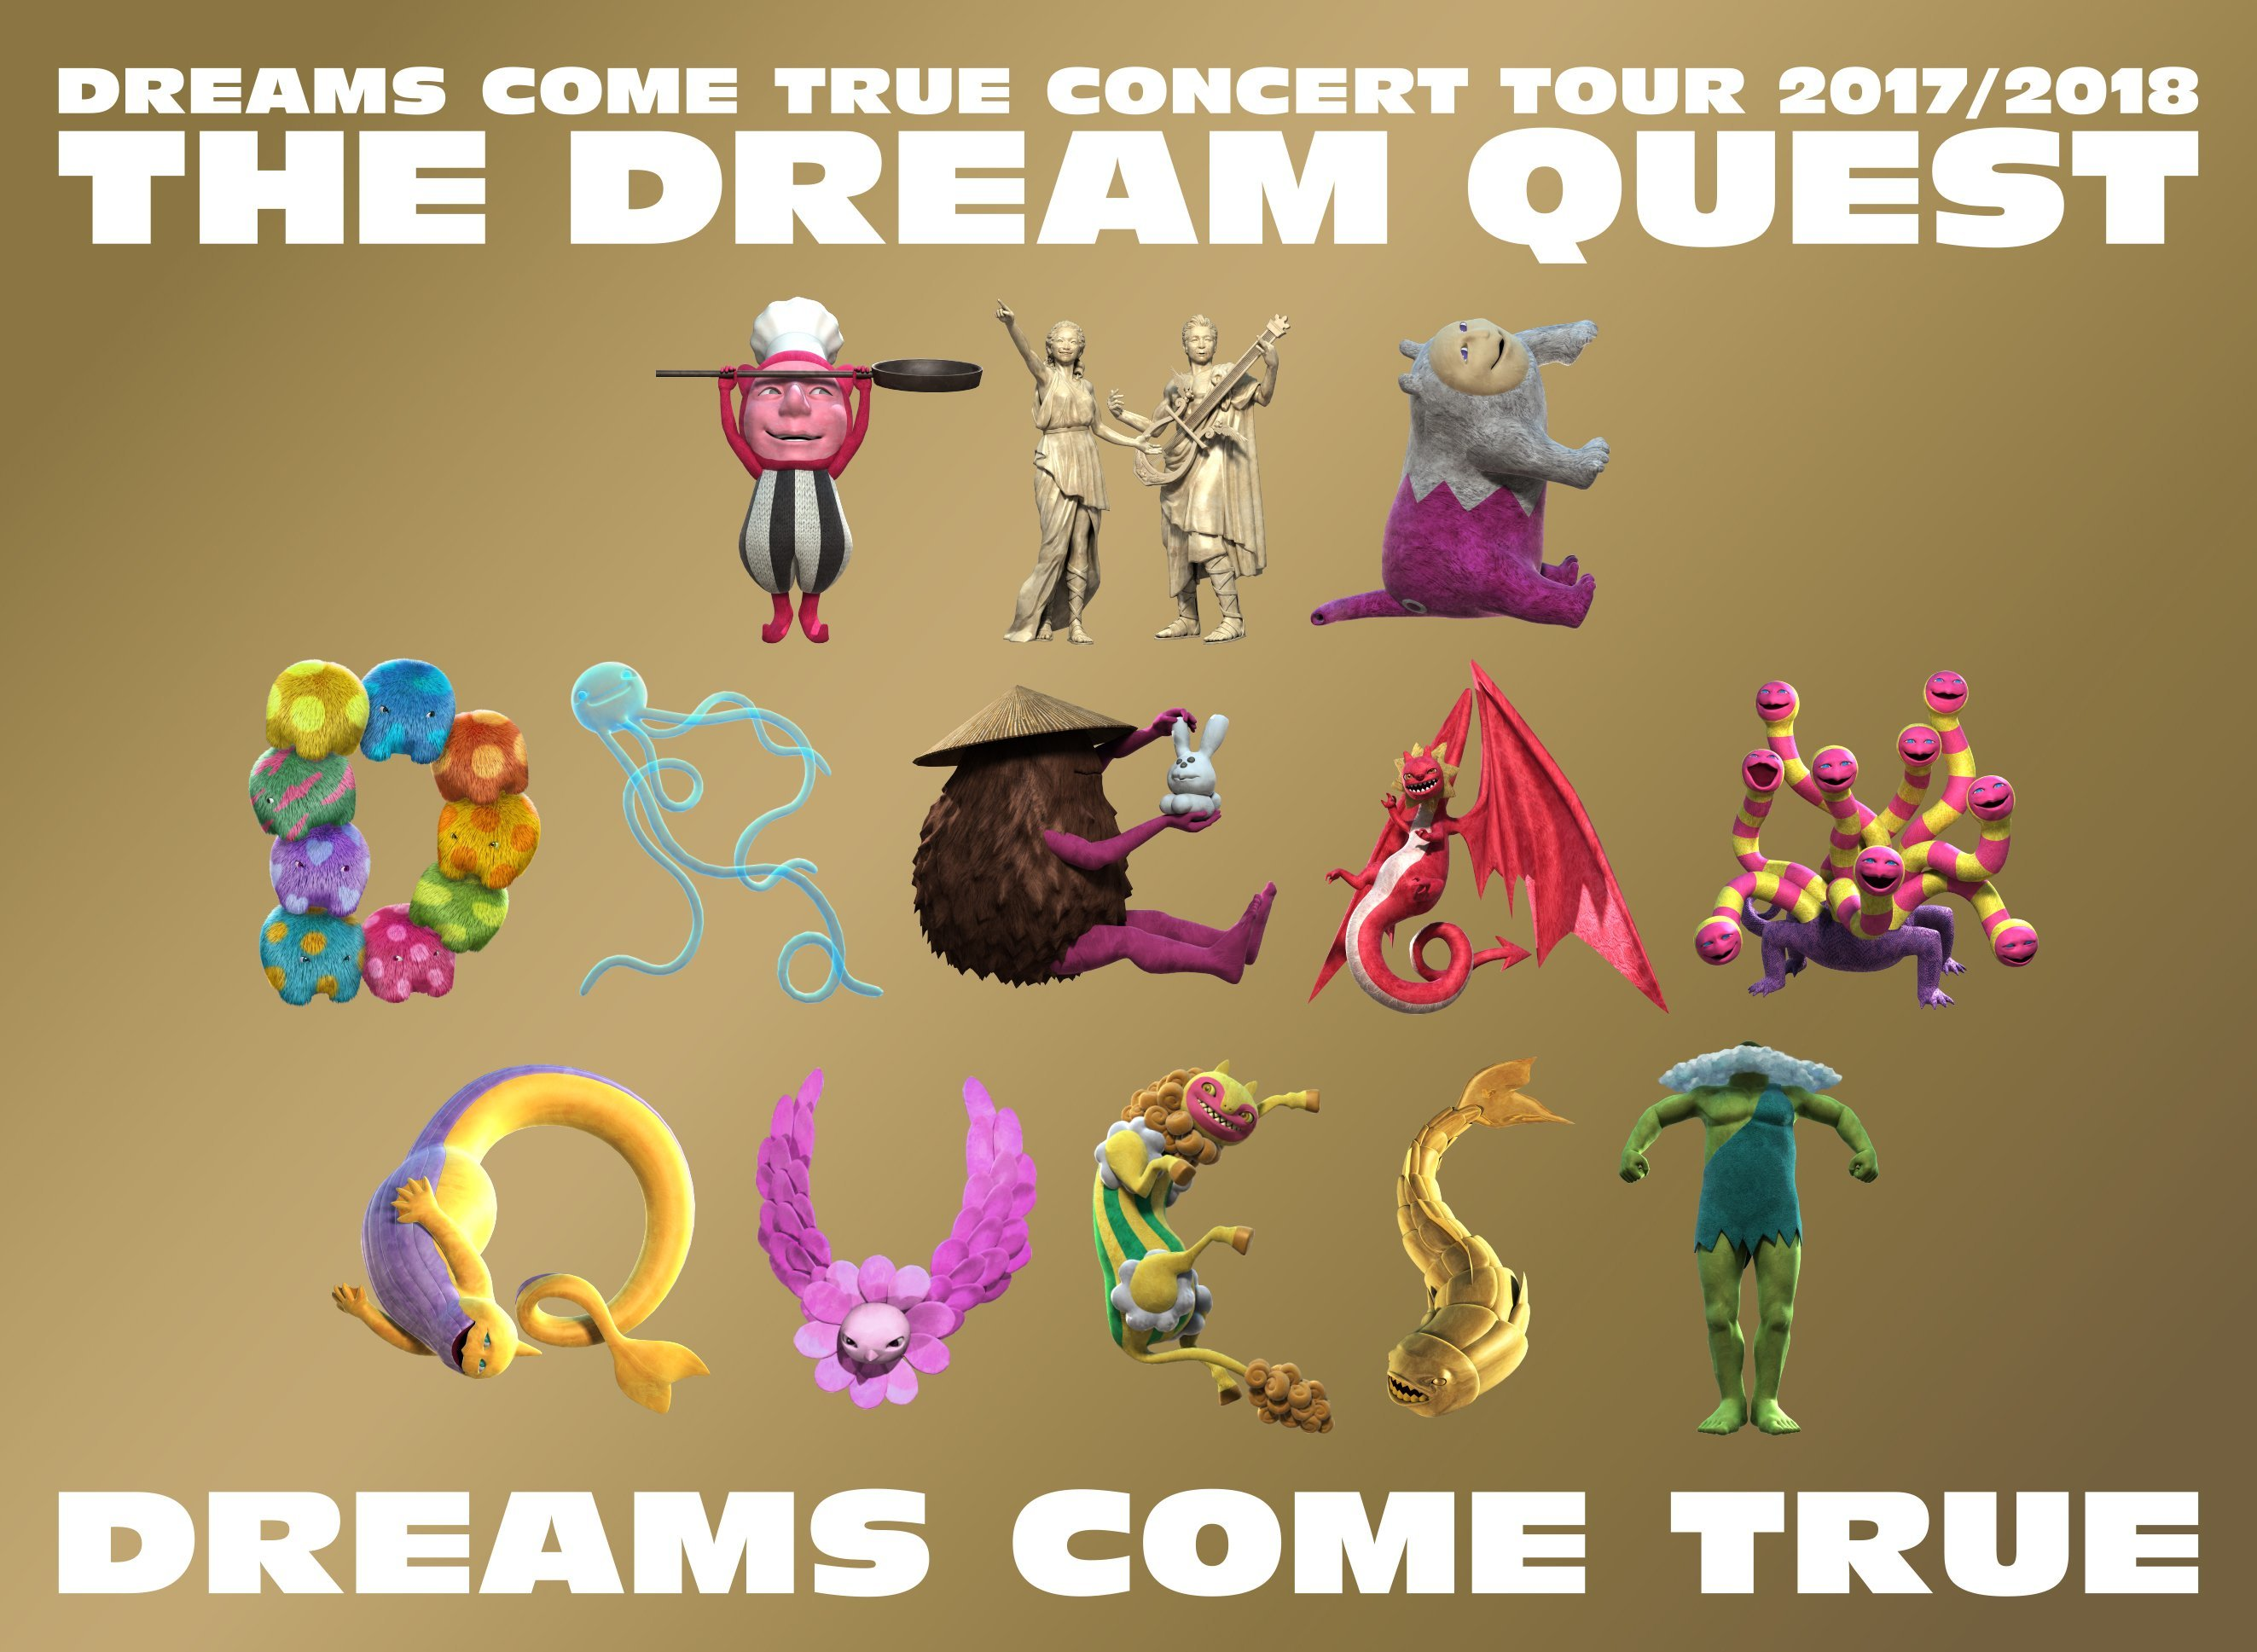 DREAMS COME TRUE CONCERT TOUR 2017/2018 - THE DREAM QUEST -